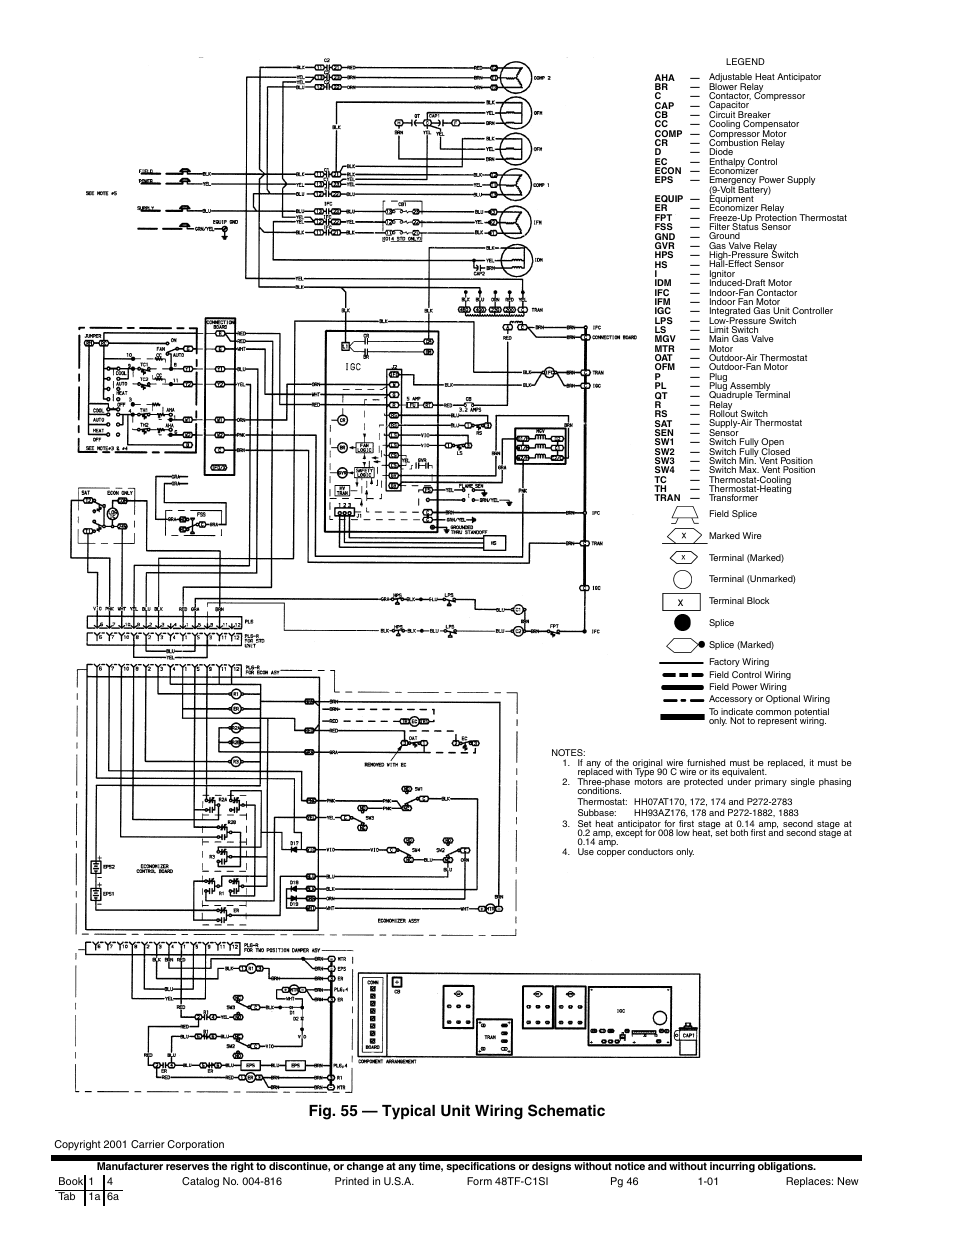 Wiring Diagram For Typical Economizer And Schematics Auto Piping Diagrams Source Fig 55 Unit Schematic Carrier 48tfe008 014 User Rh Manuair Com Air Handler